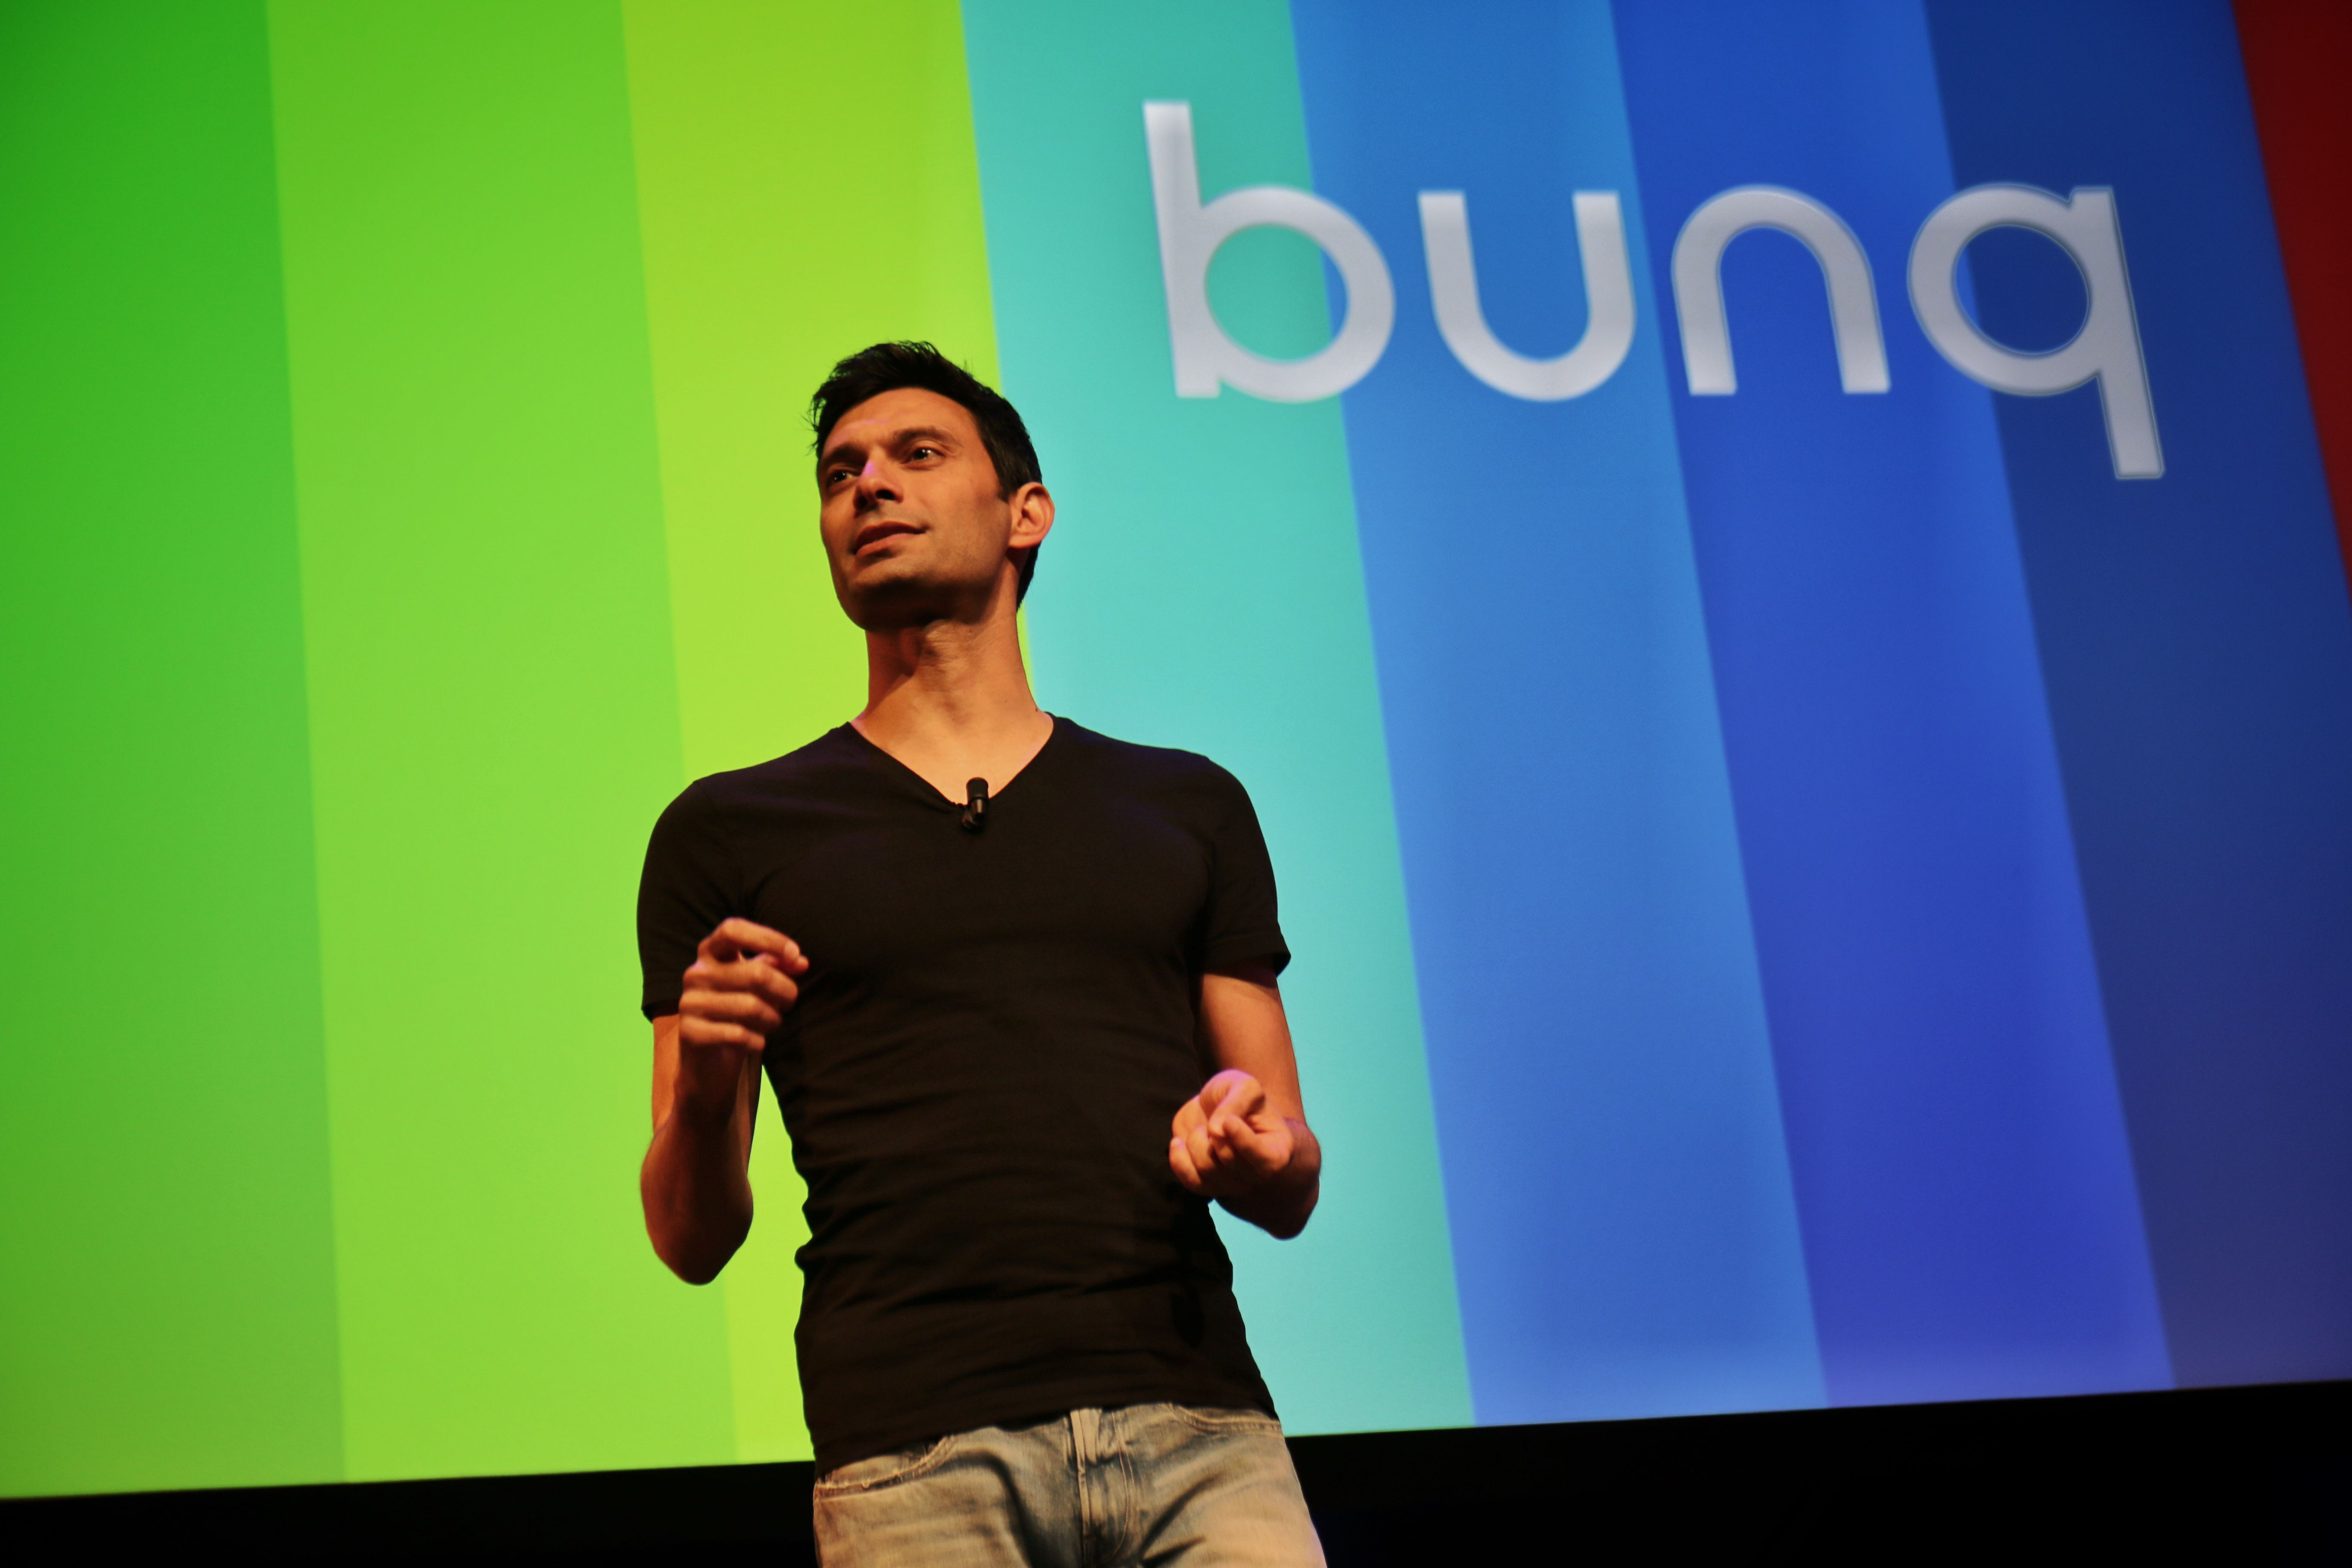 Bunq lets you track and settle up group expenses